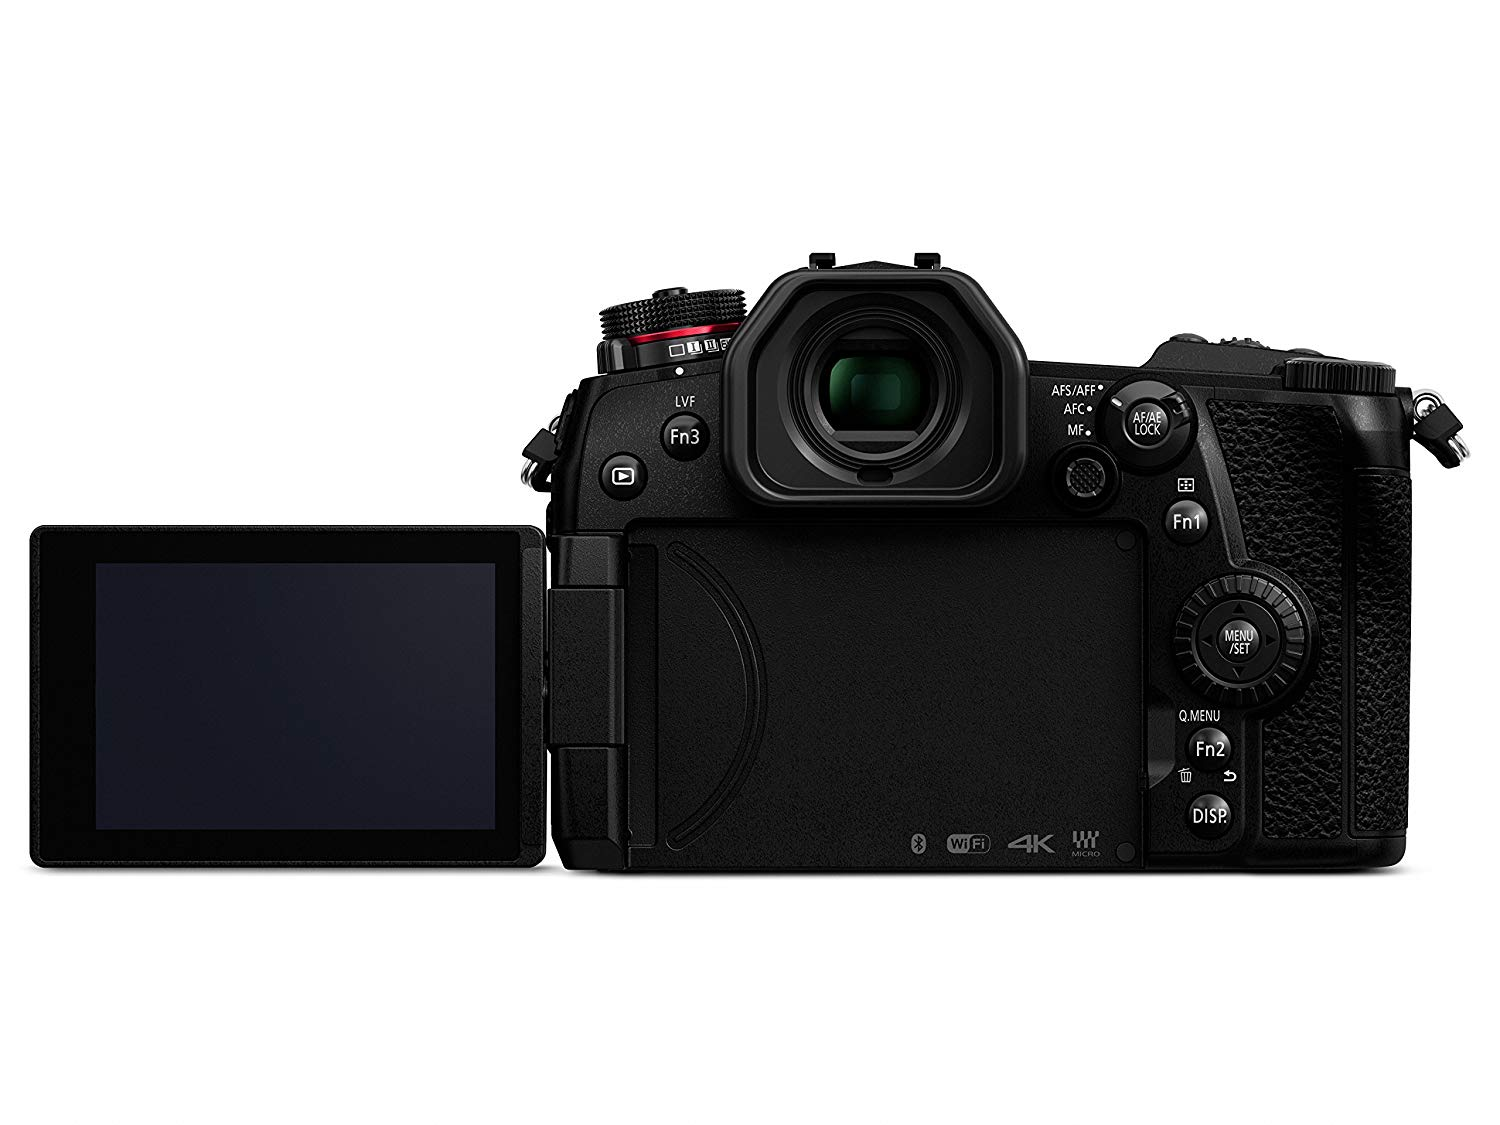 Panasonic Lumix G9 A Mirror-less Master-price in 2020